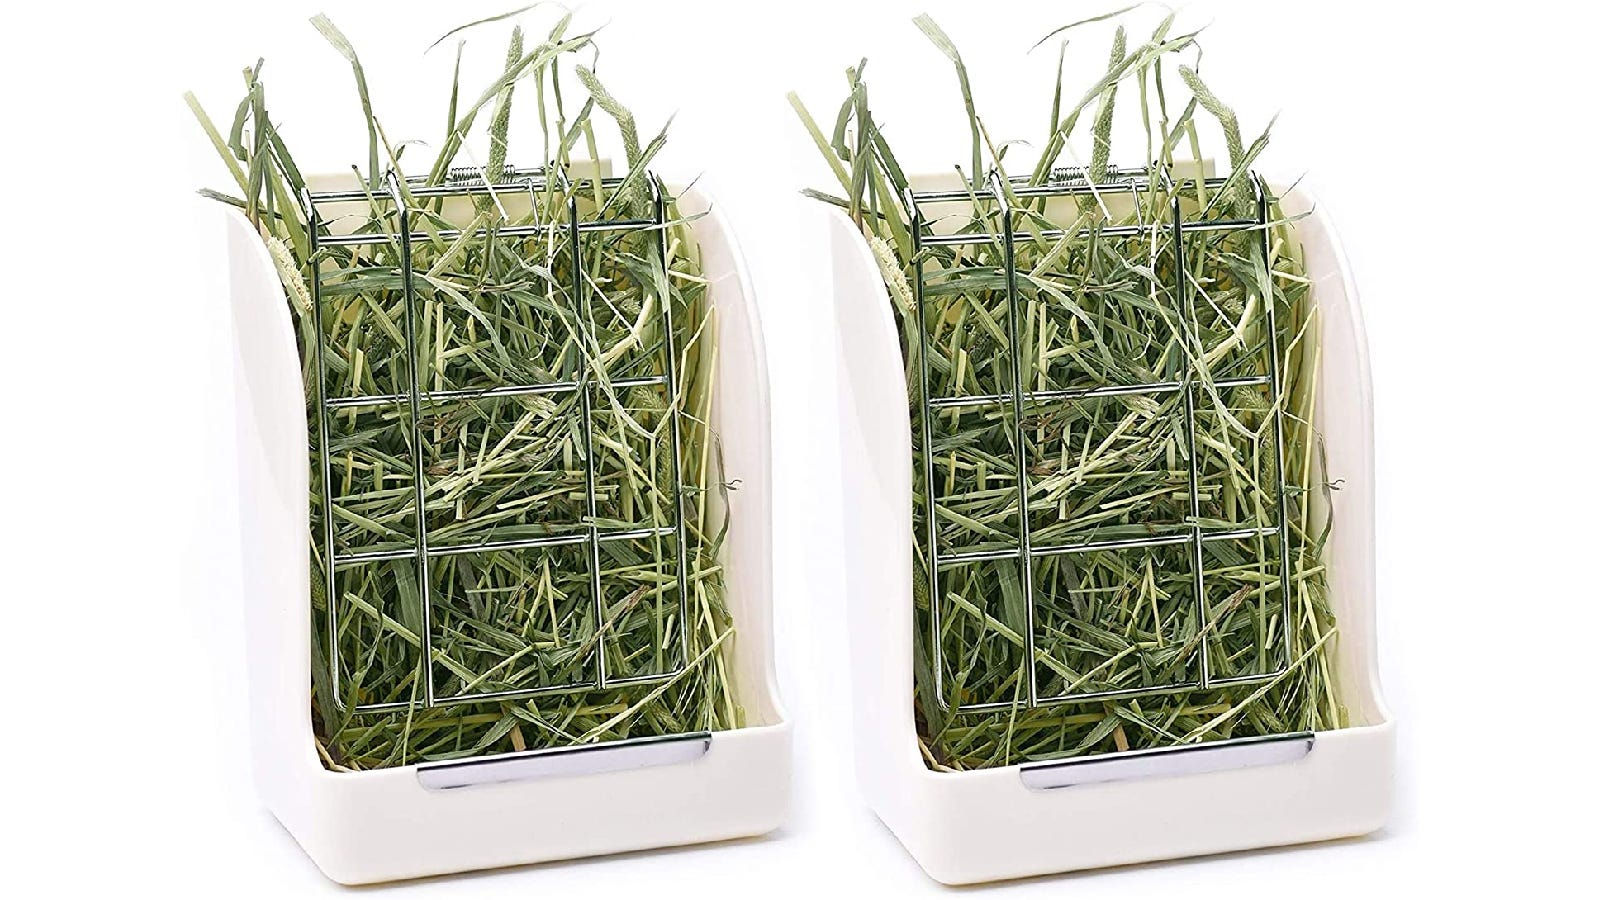 Two identical white plastic hay feeders filled with green hay.